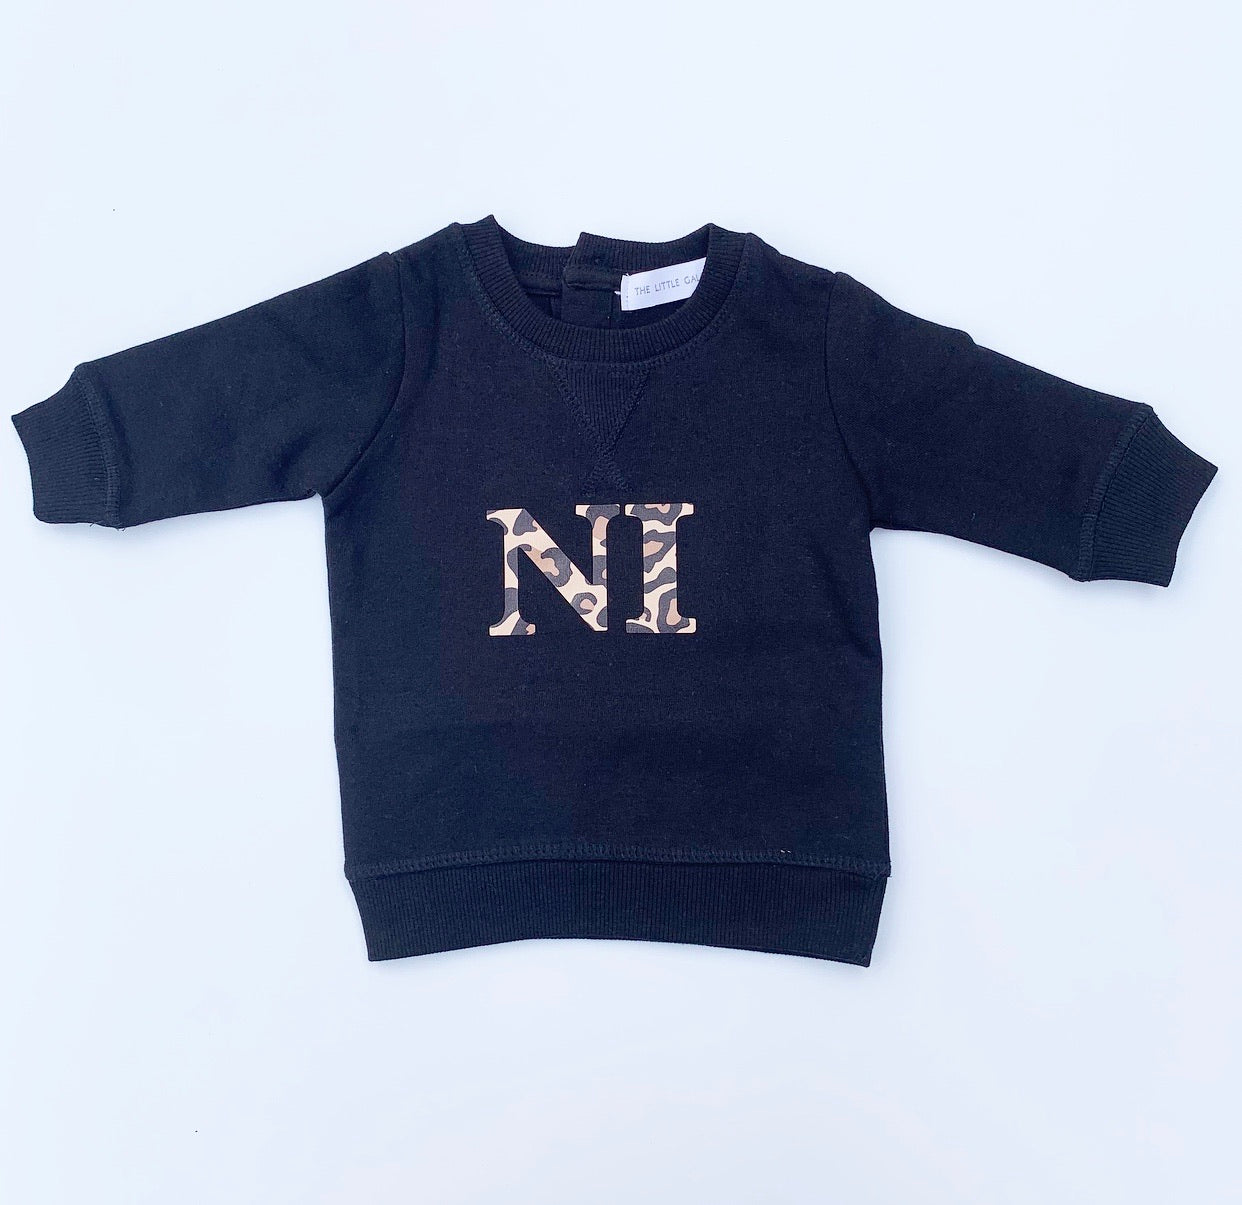 Personalised jumpers - the little gallivant.